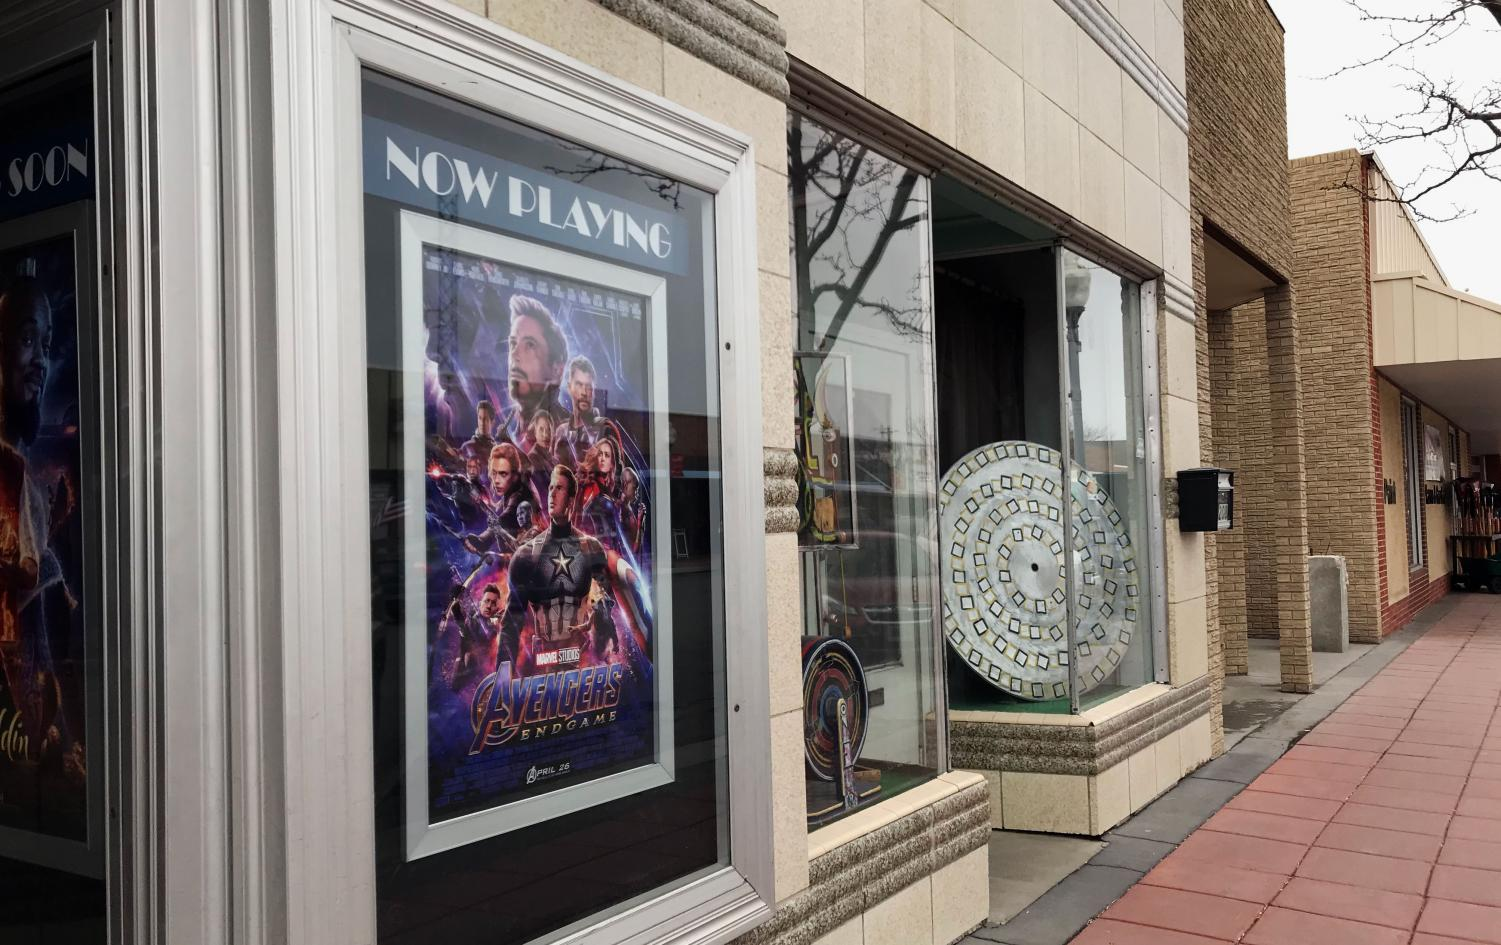 "Marvel's ""Avengers: Endgame"" opened on April 26. Long awaited, both theaters of Twin Vali Cinema in Powell showed the movie opening night."